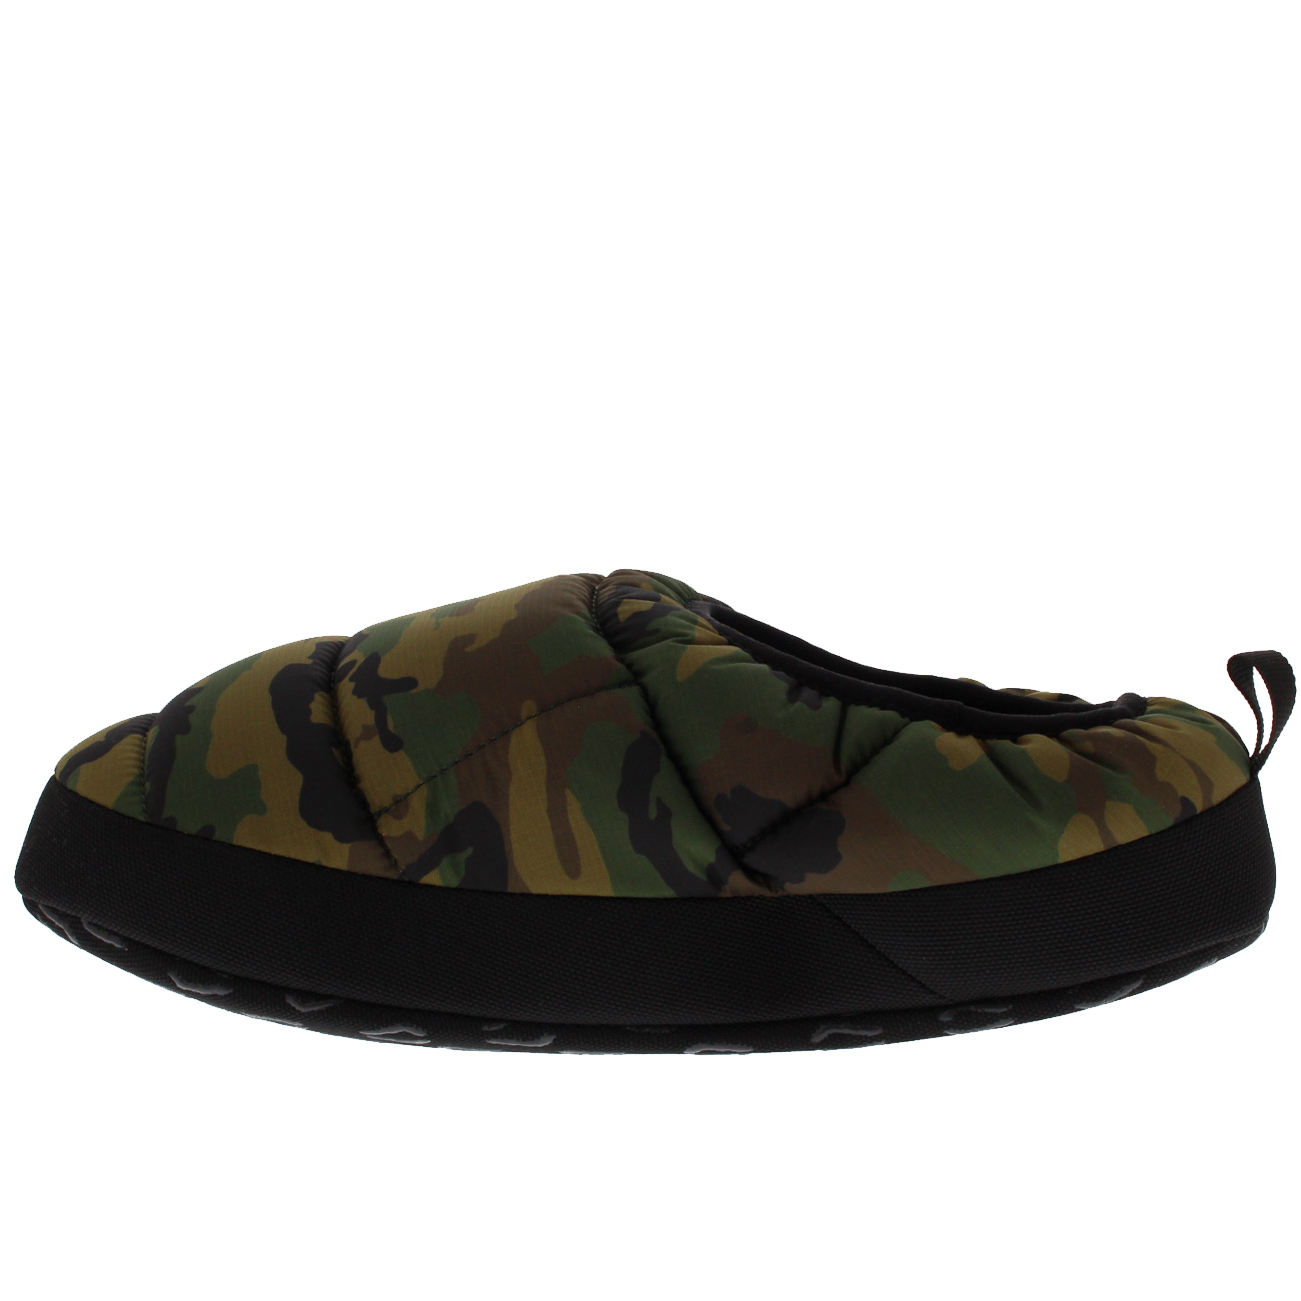 Mens-The-North-Face-NSE-Tent-Mule-Slippers-  sc 1 st  eBay & Mens The North Face NSE Tent Mule Slippers III Water Resistant ...